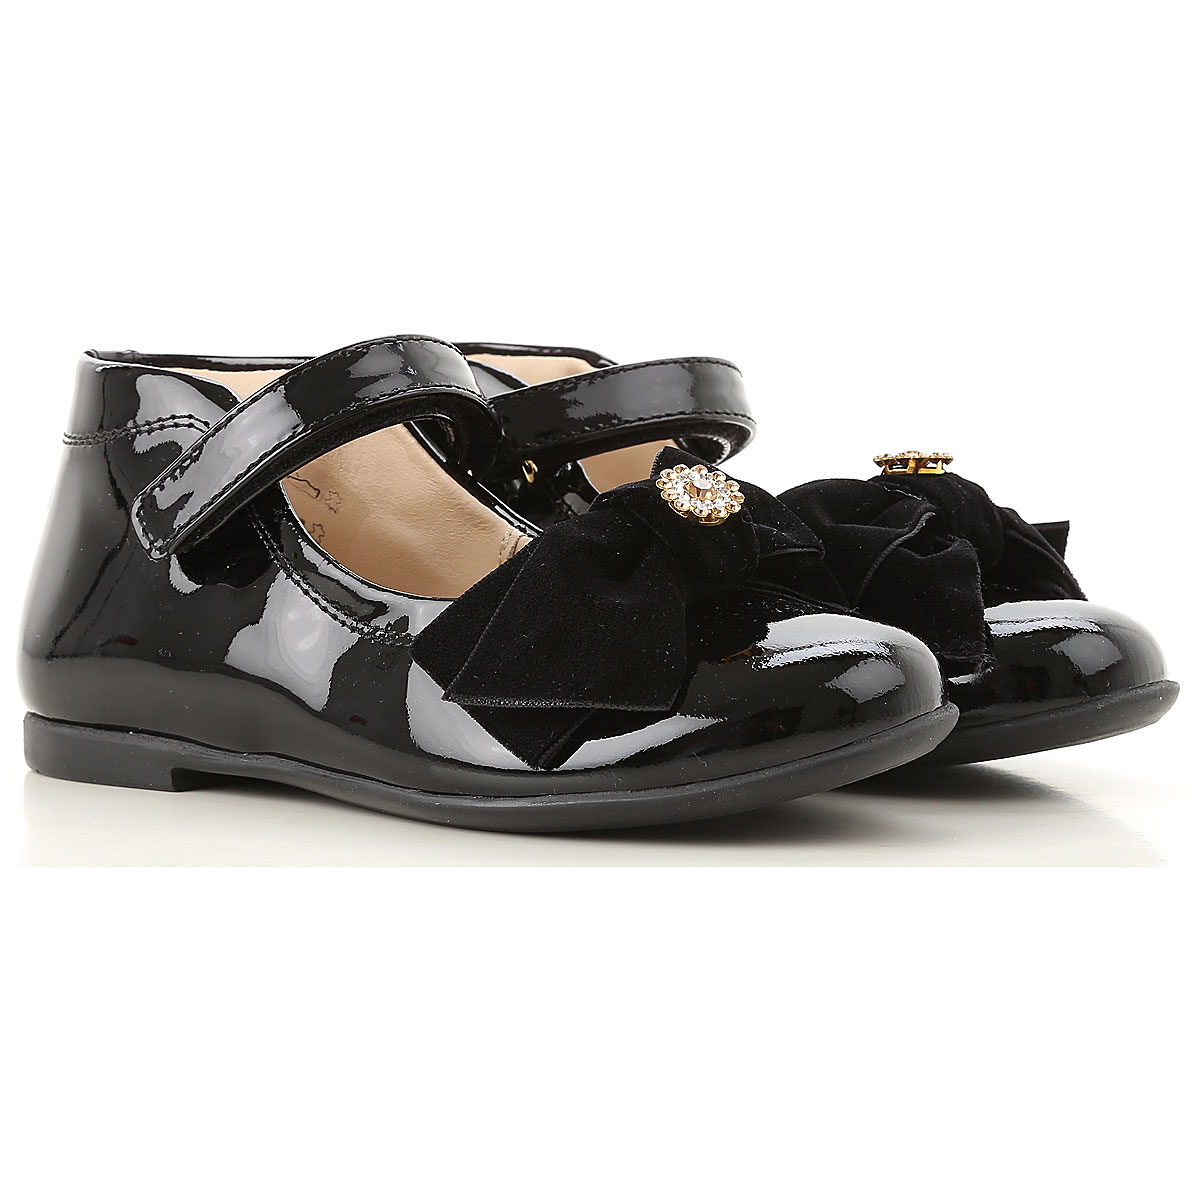 Image of Florens Kids Shoes for Girls, Black, Leather, 2017, 20 21 22 23 24 25 26 27 28